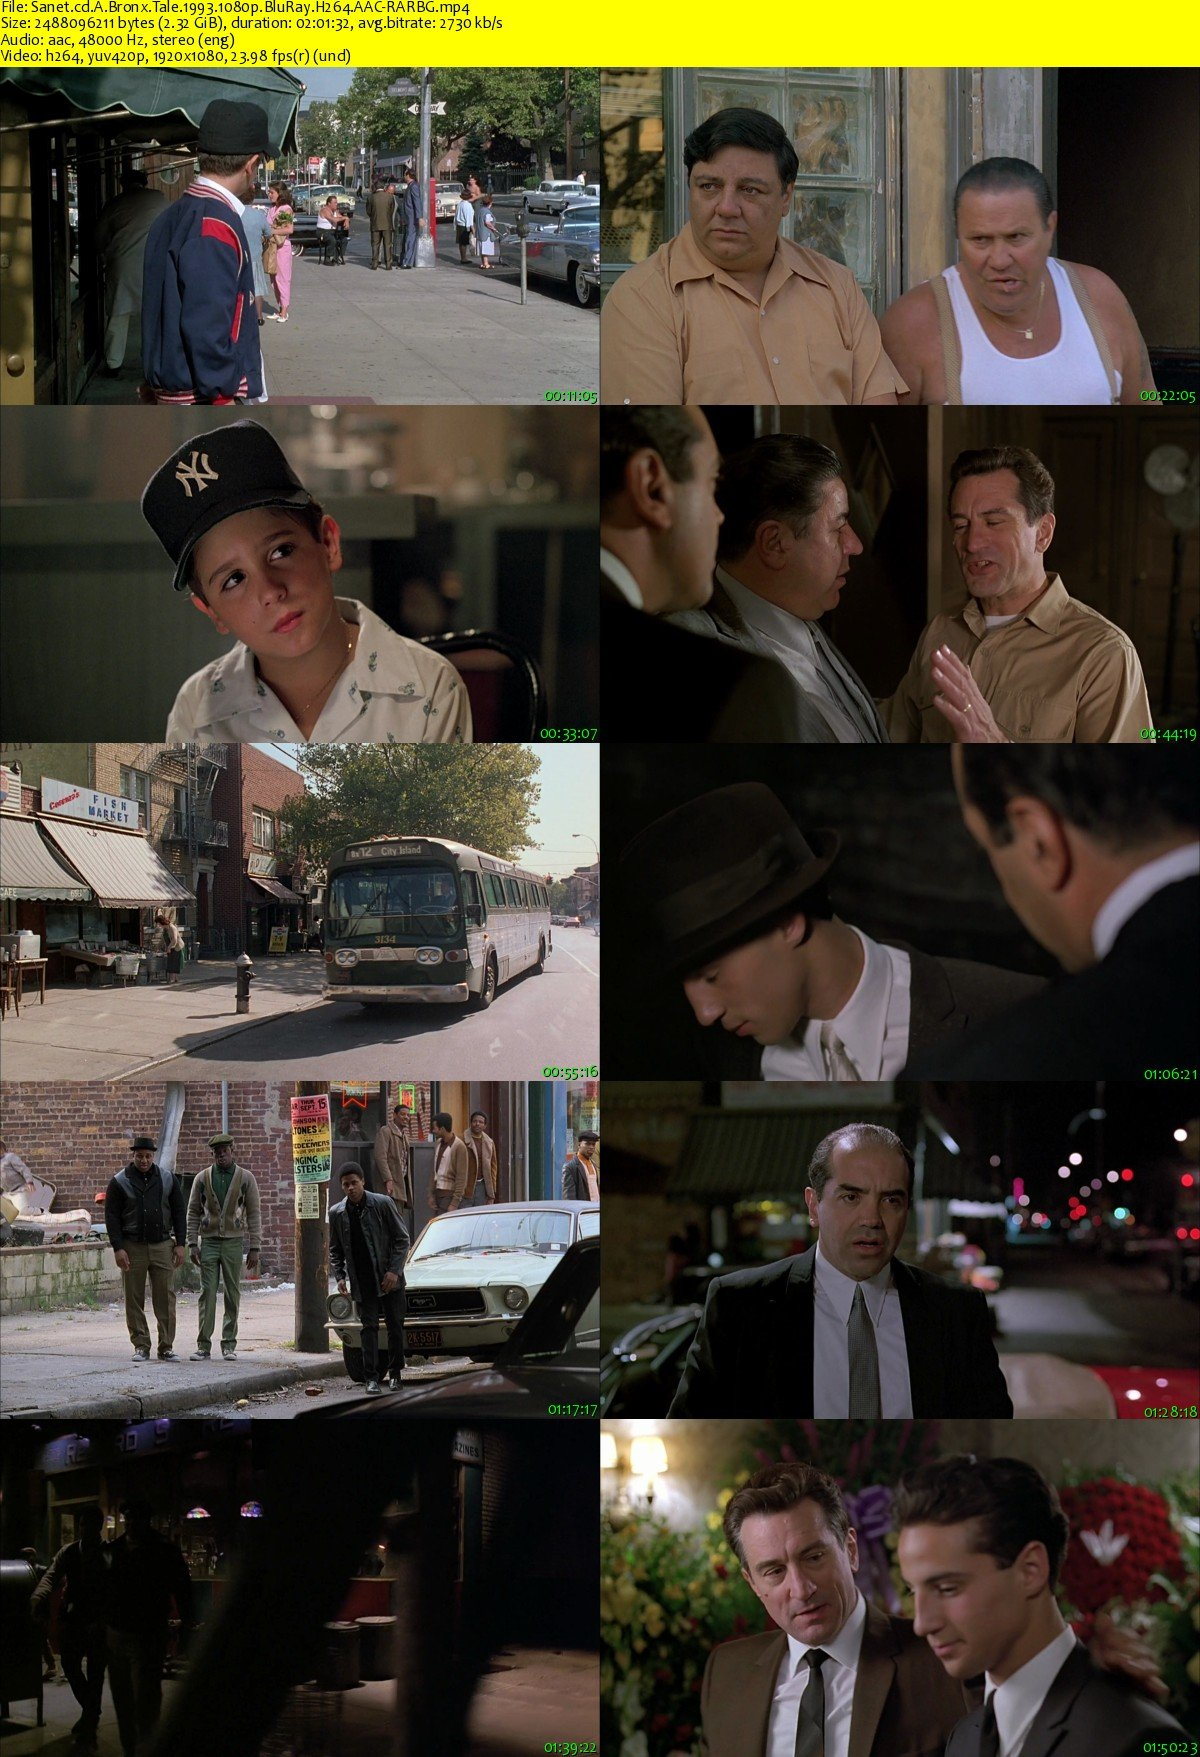 essay on a bronx tale A bronx tale is a film directed by robert di nero about a boy named cologero (an italian white male) and his life as he grows up in a town occupied by.